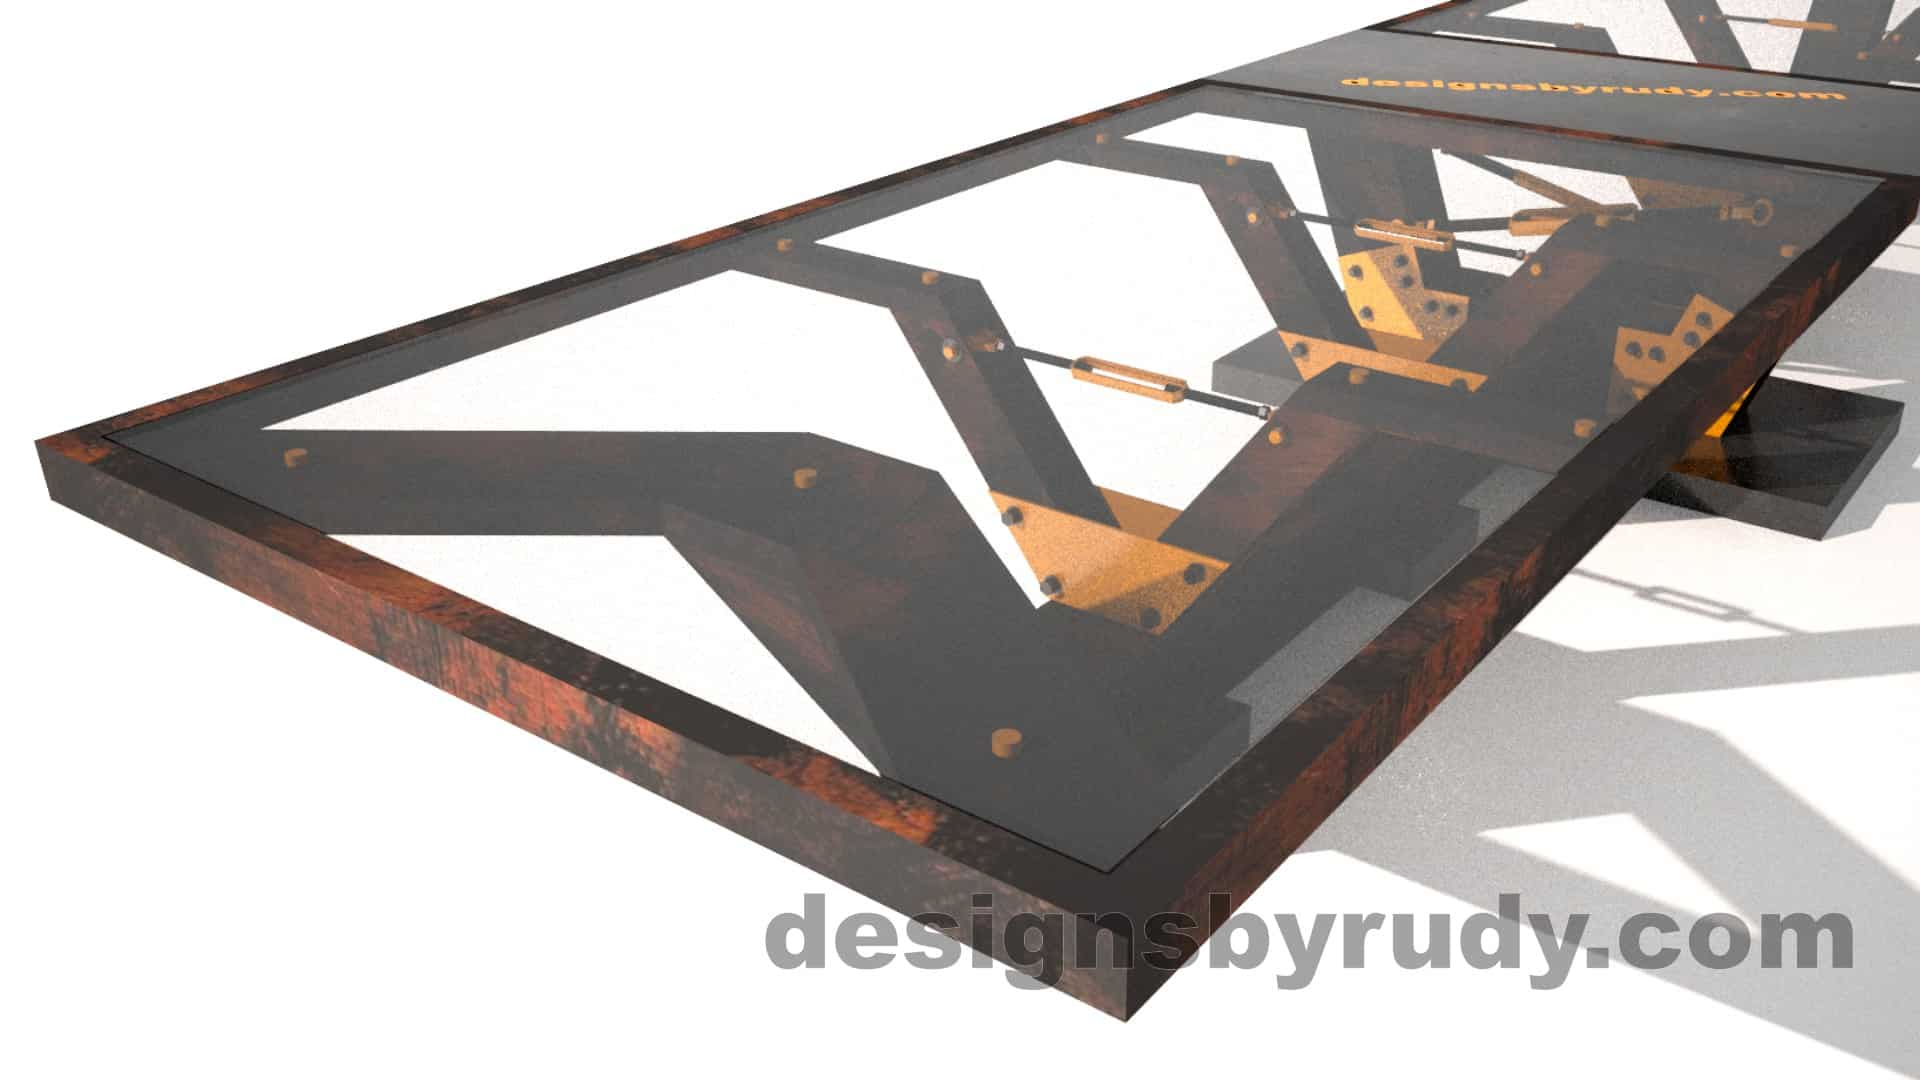 Glass, steel, concrete conference table design by Designs by Rudy 3